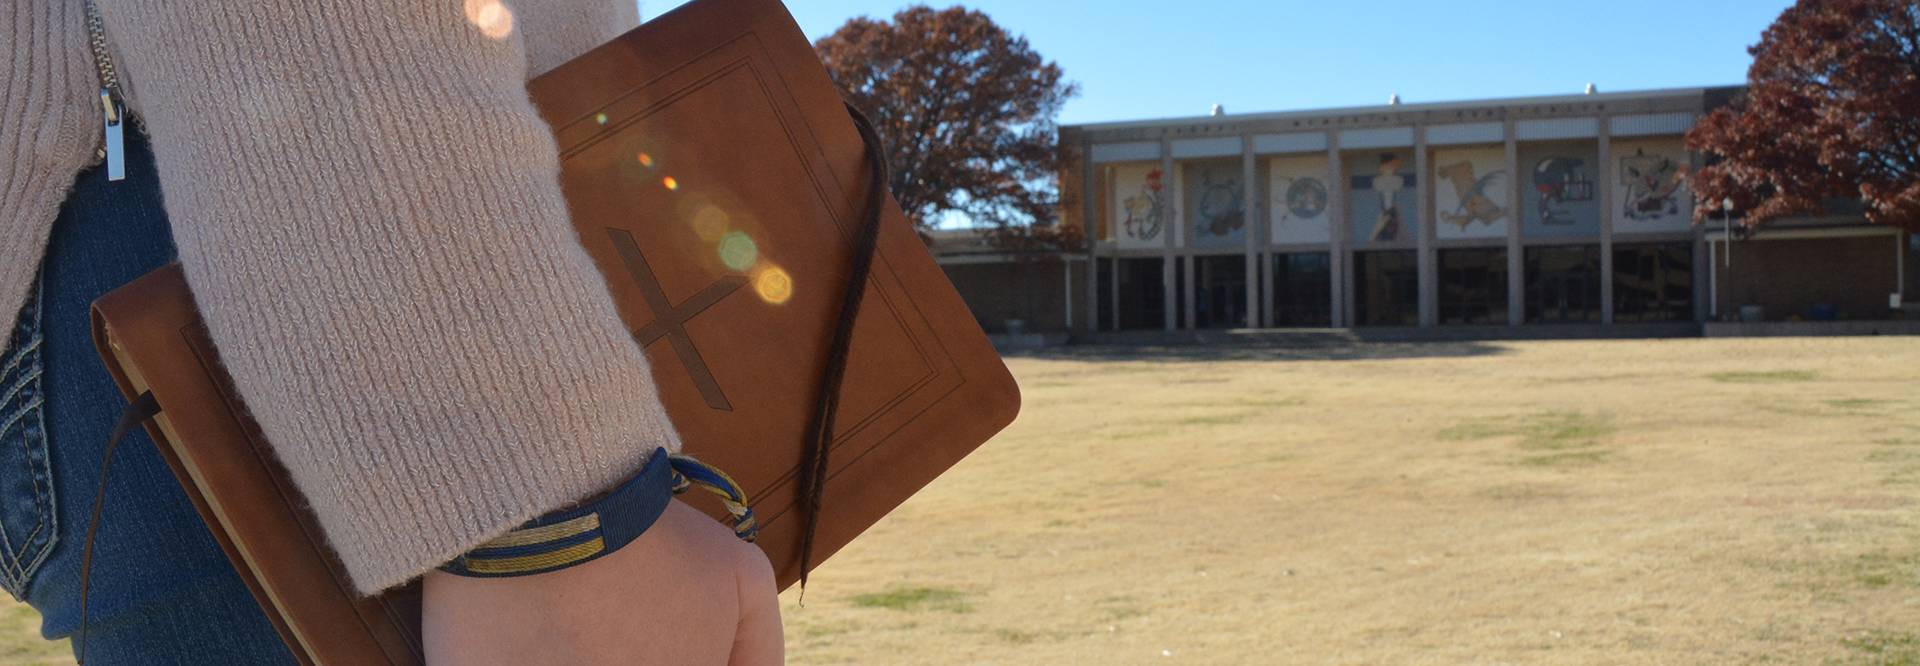 Close up of  student's hand holding a Bible while standing in front of the Harral Memorial Auditorium & Fine Arts Complex.